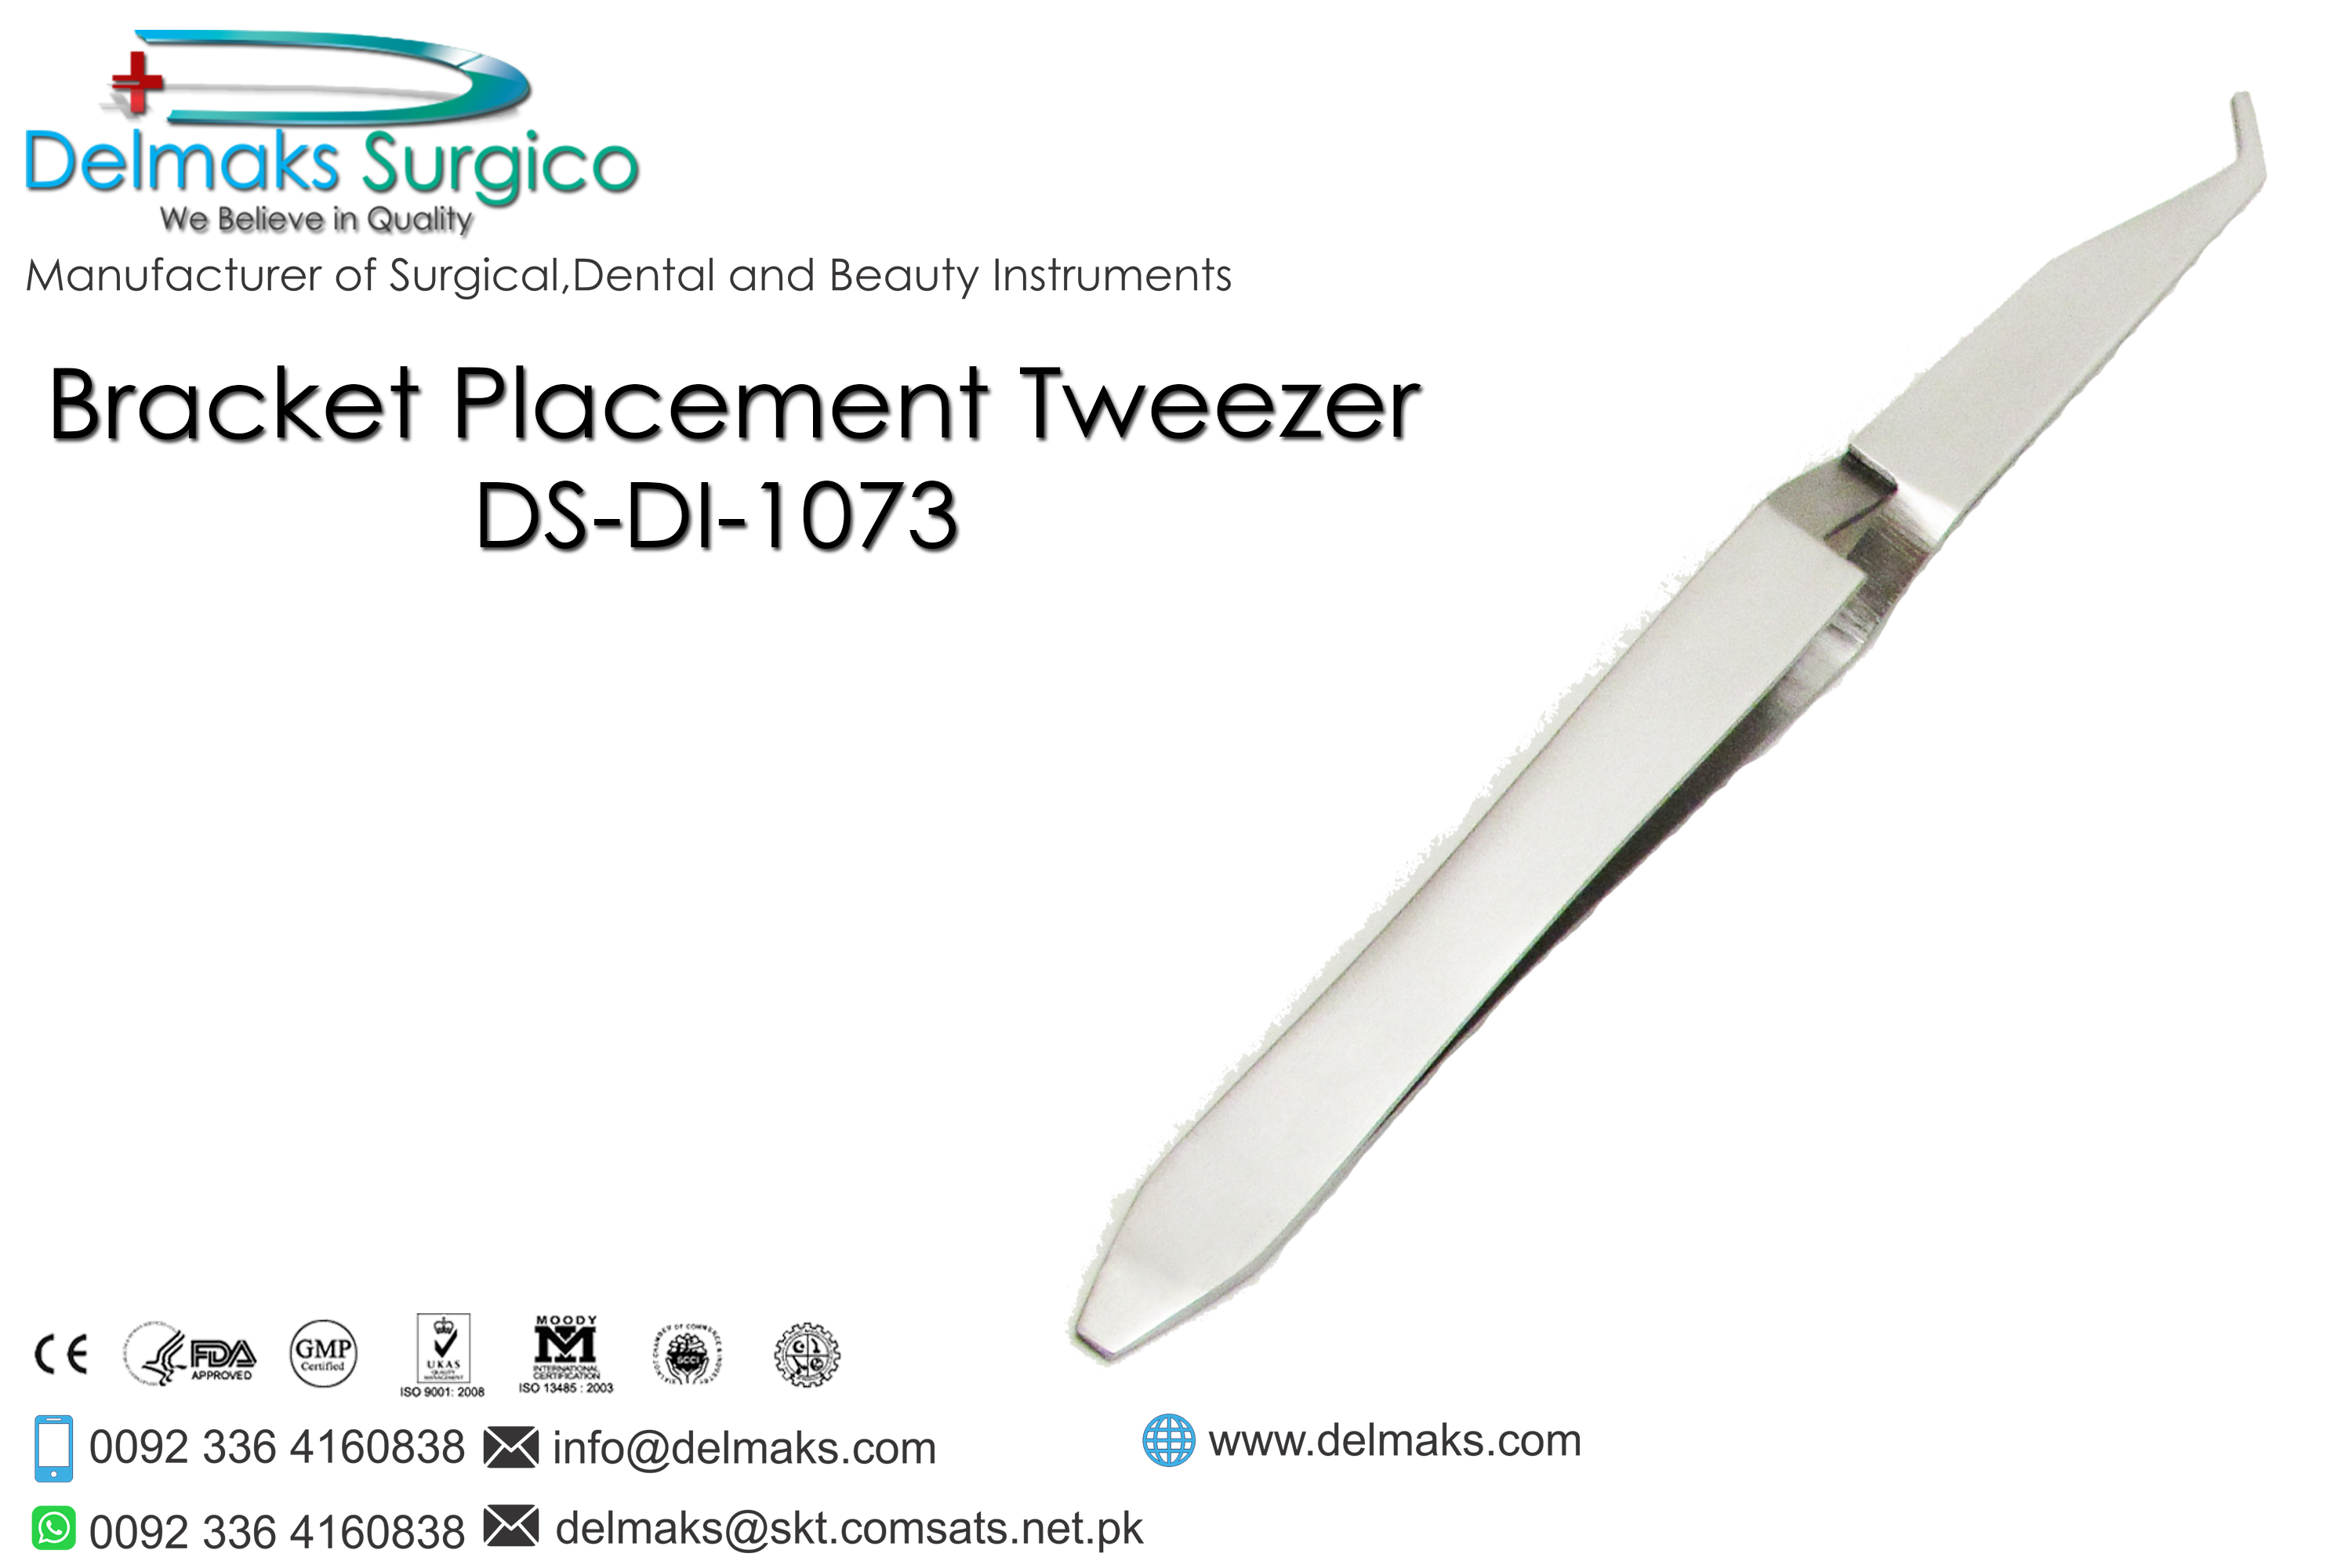 Bracket Placement Tweezer-Bracket Tweezers-Orthodontics-Dental Instruments-Delmaks Surgico